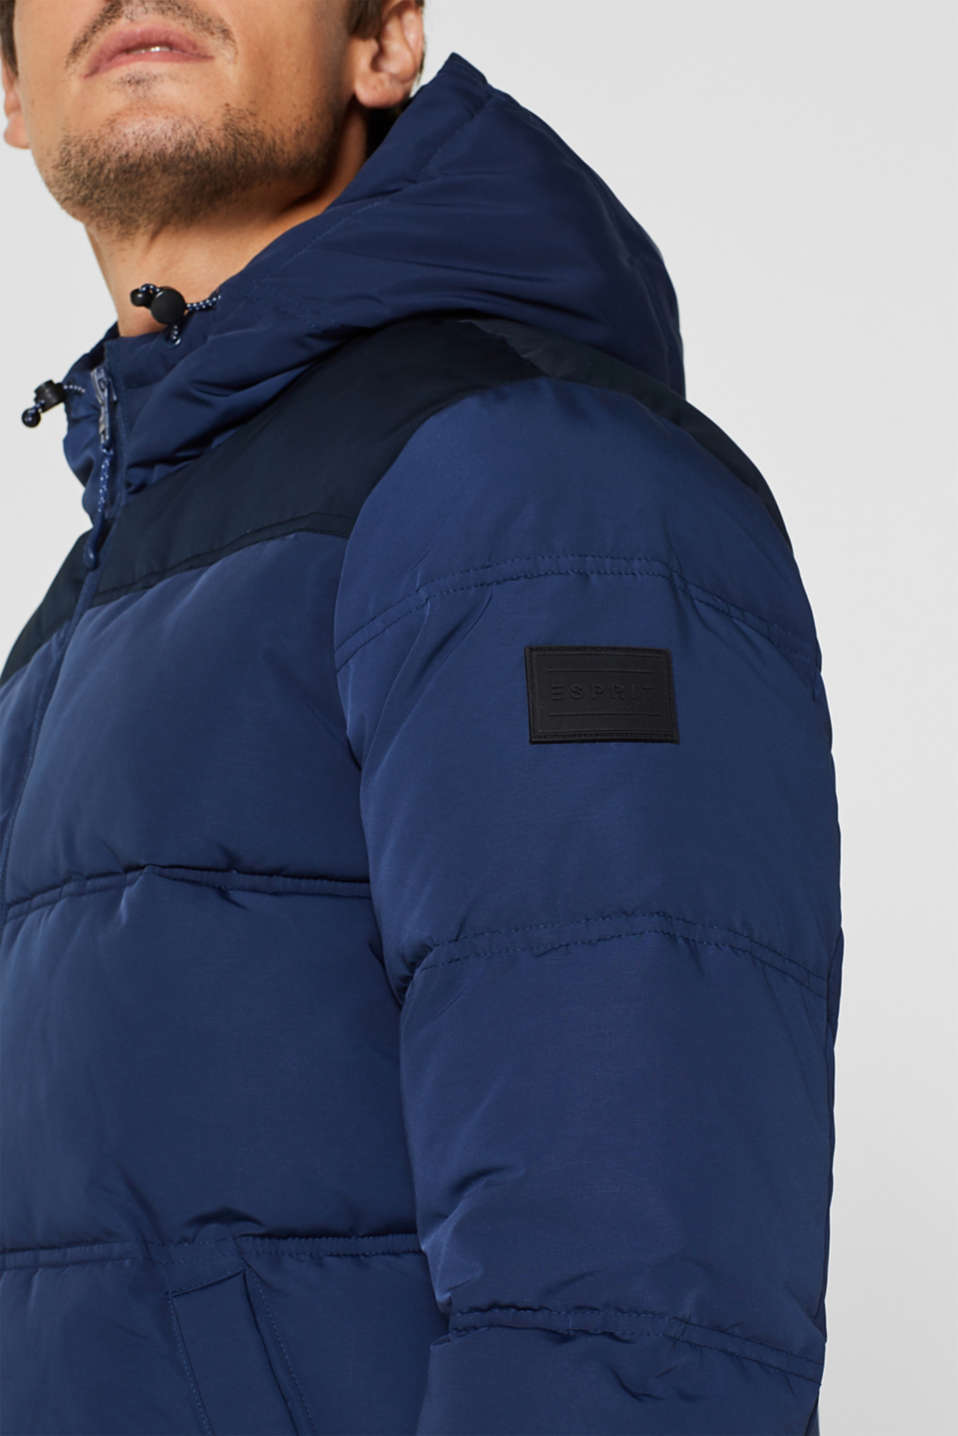 Jackets outdoor woven, BLUE, detail image number 2